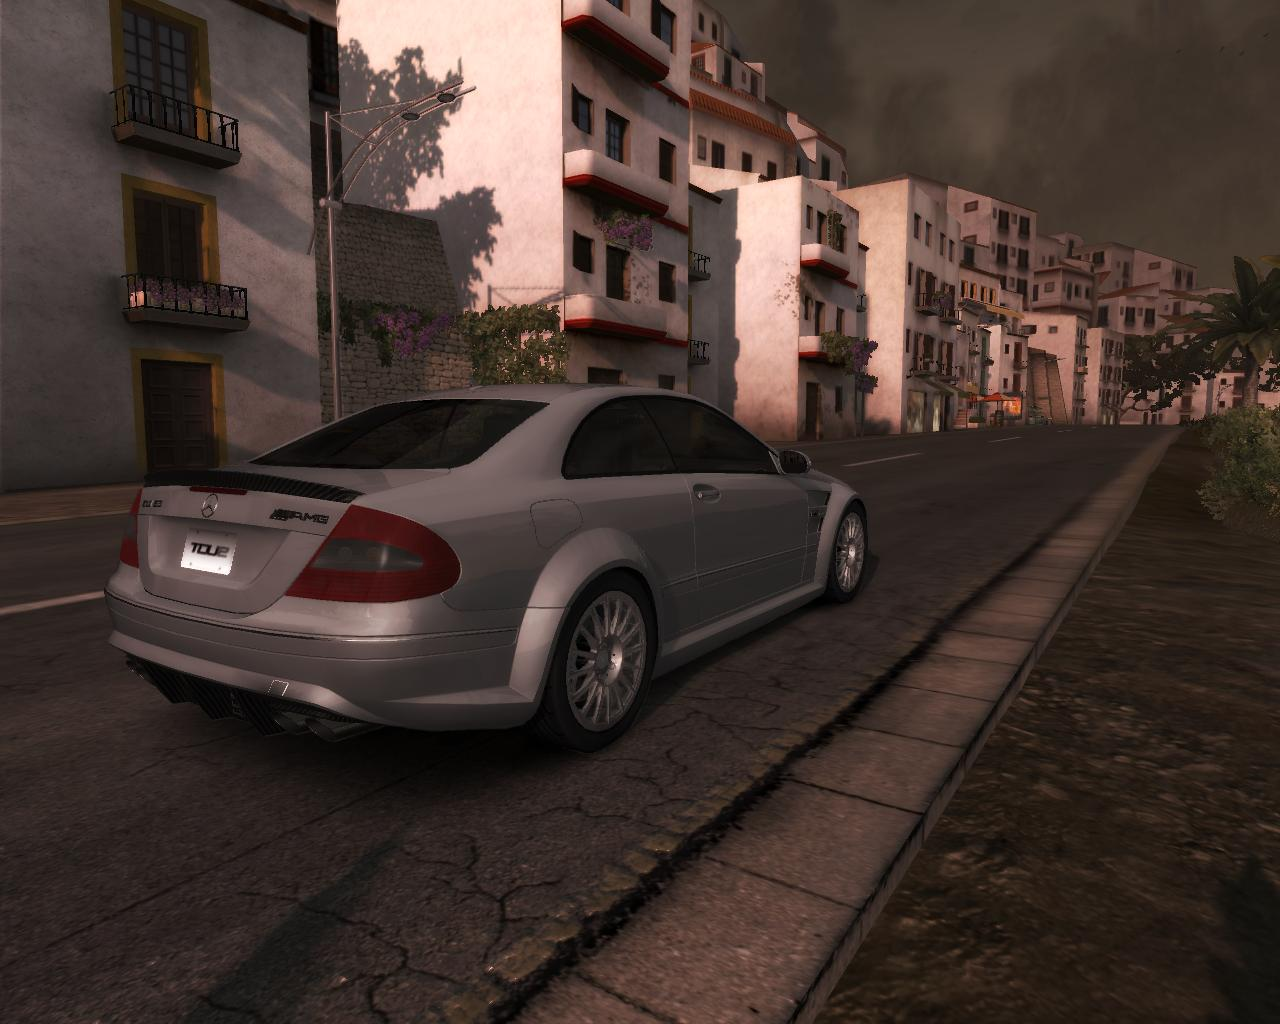 Mercedes-Benz CLK 63 AMG Black Series - Test Drive Unlimited 2 Mercedes-Benz CLK 63 AMG Black Series